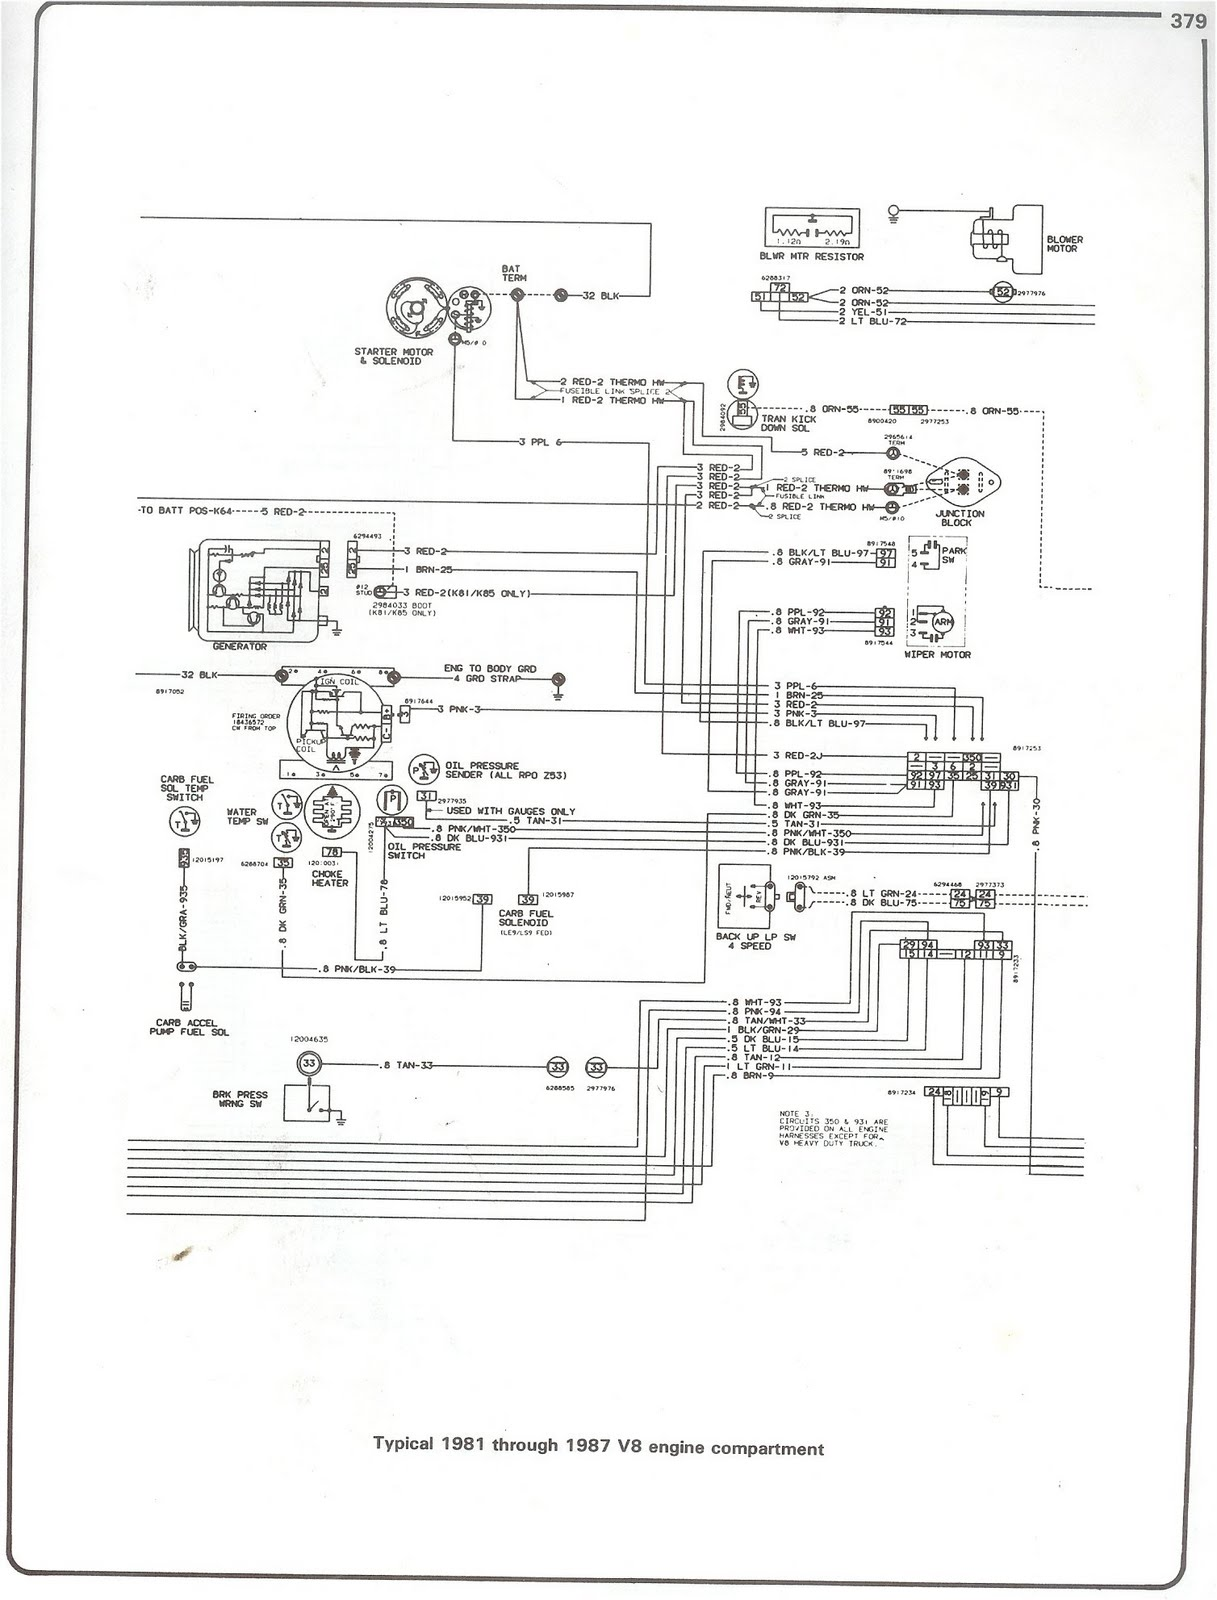 1979 chevy k10 wiring horne s wiring diagram write 1997 Chevy 1500 Wiring Diagram